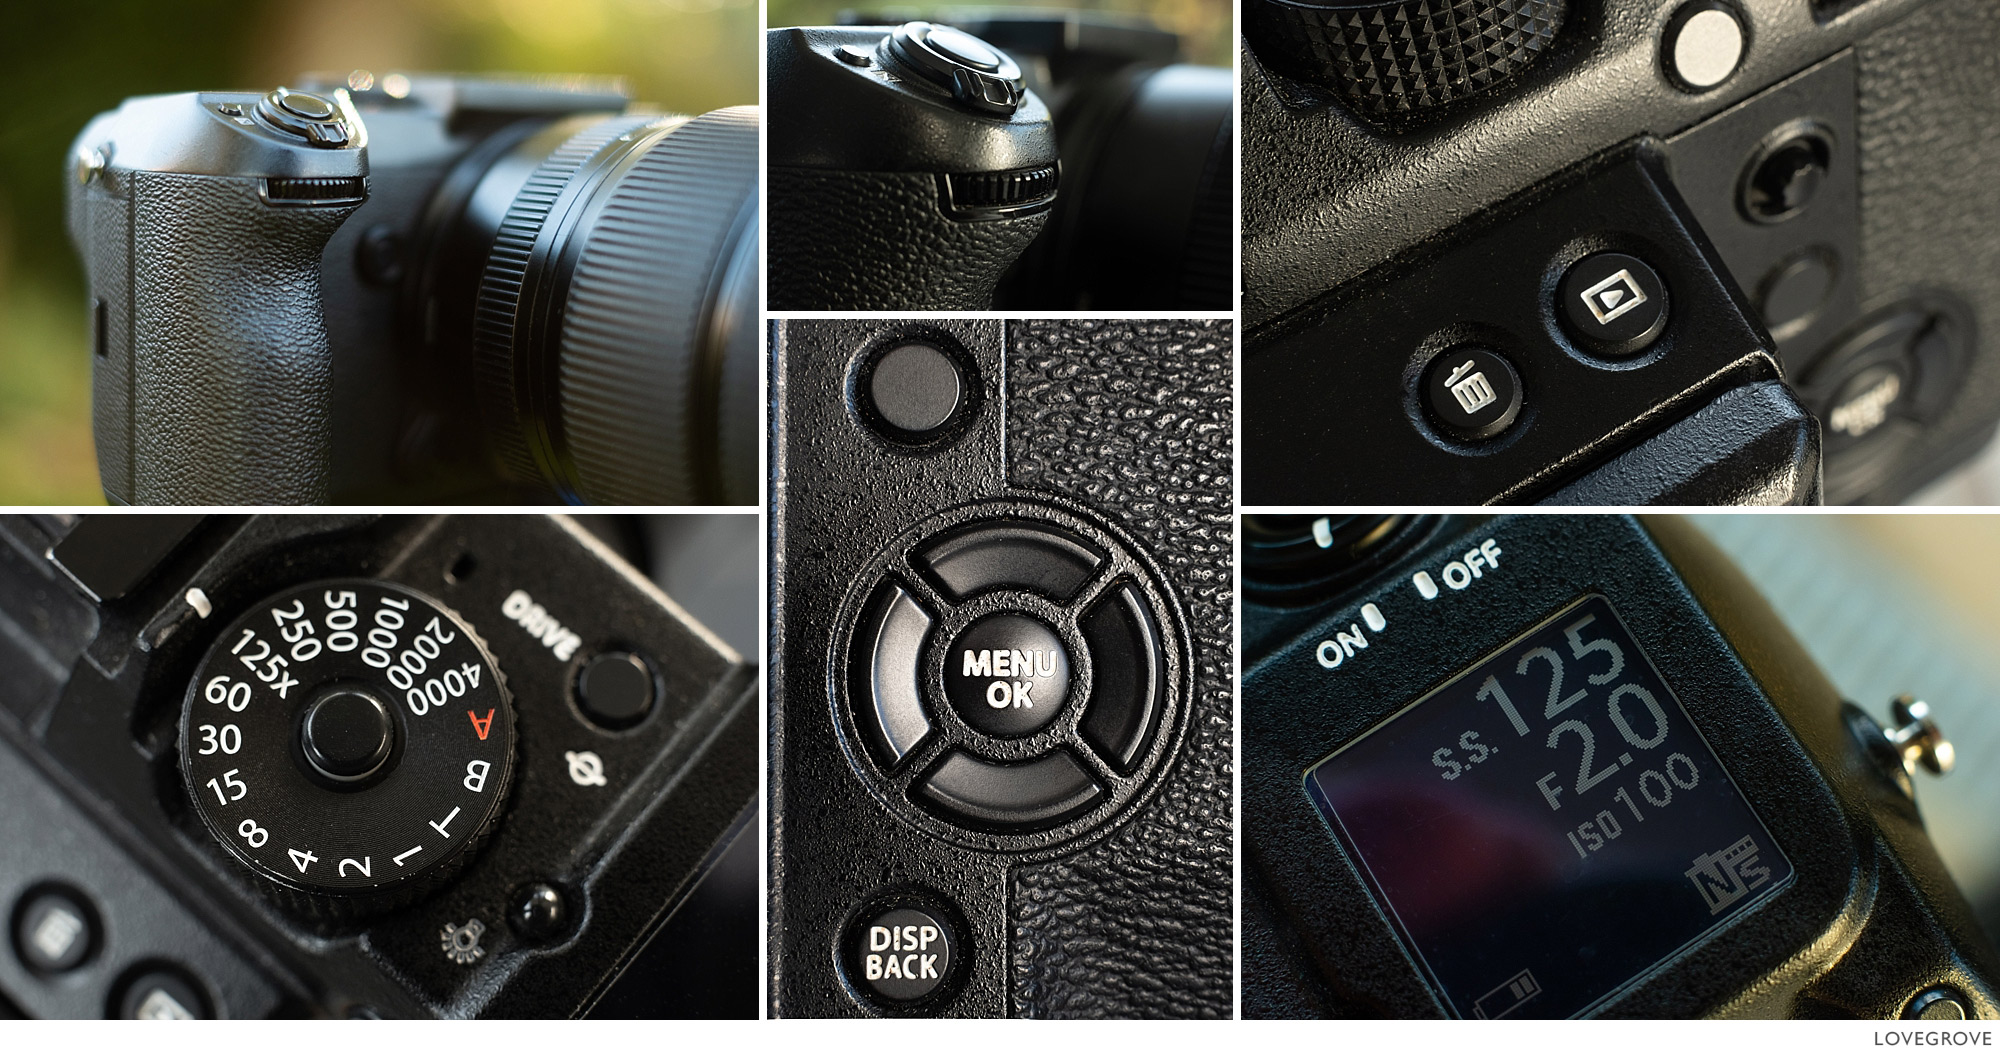 Details of the Fujifilm GFX50s